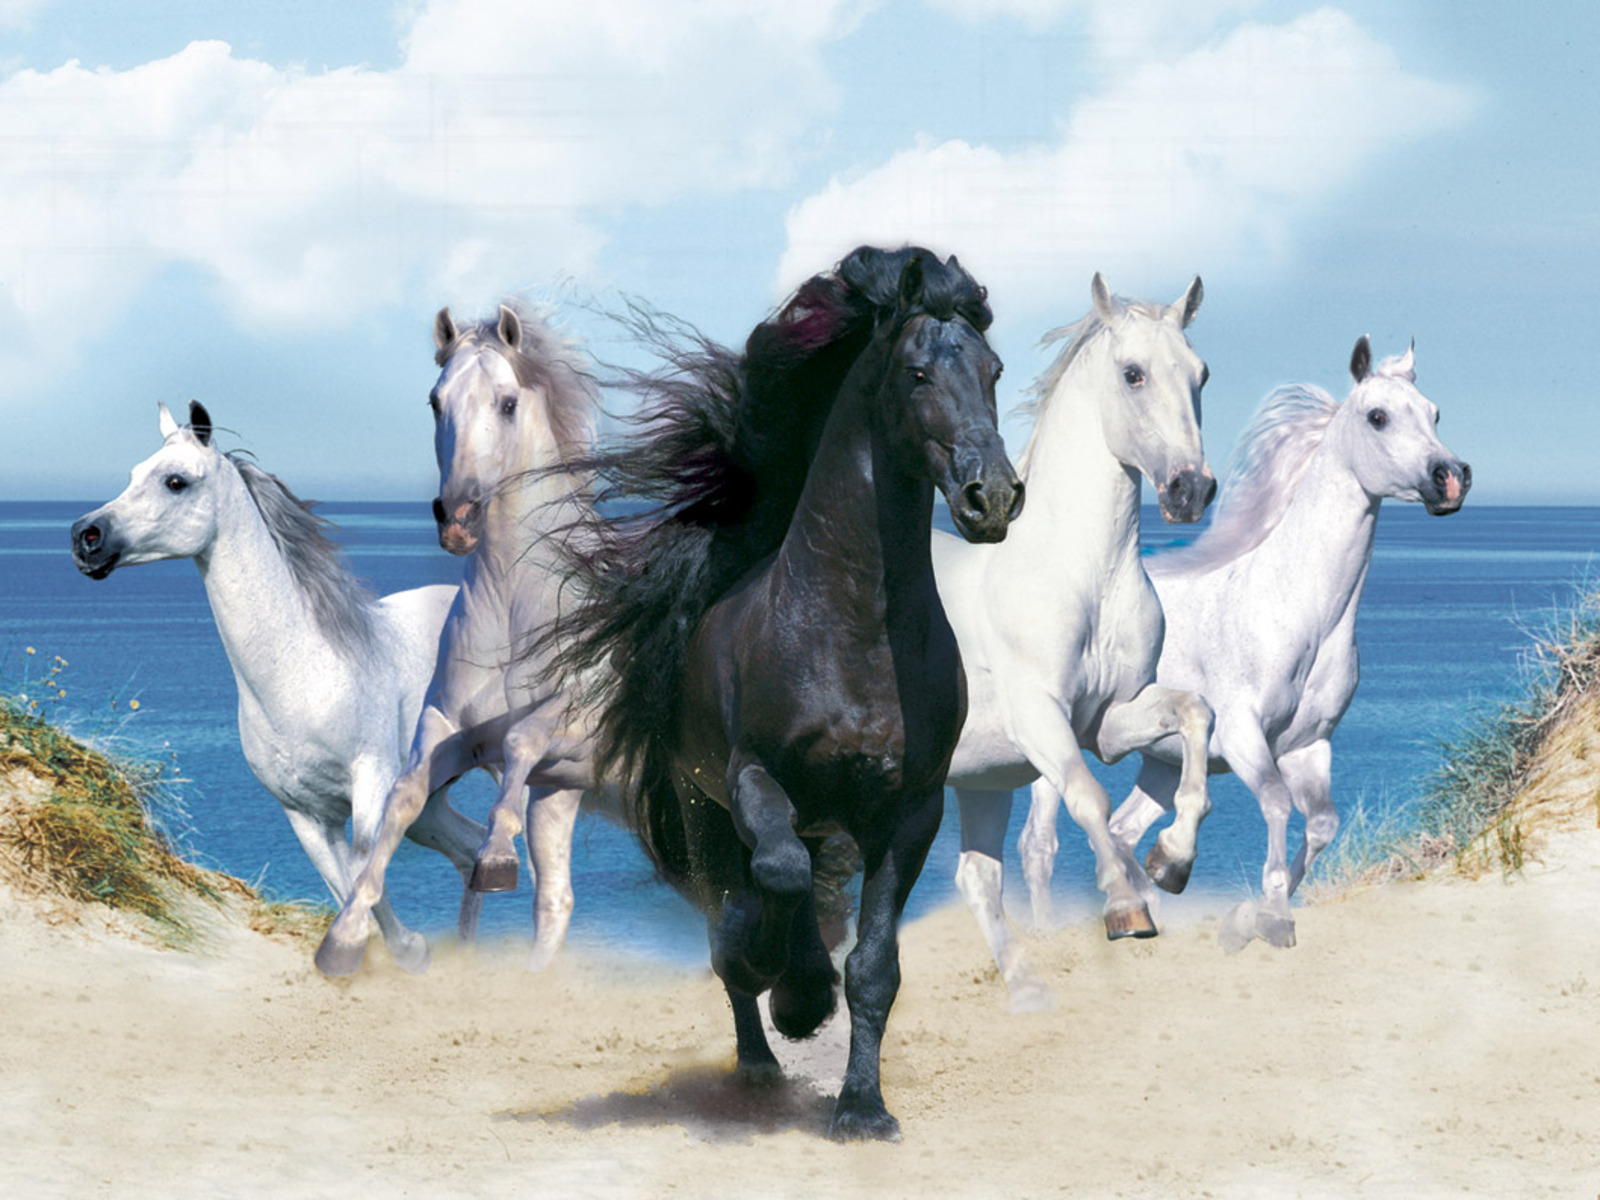 Horse Wallpapers Pictures of Horse   HD Animal Wallpapers 1600x1200